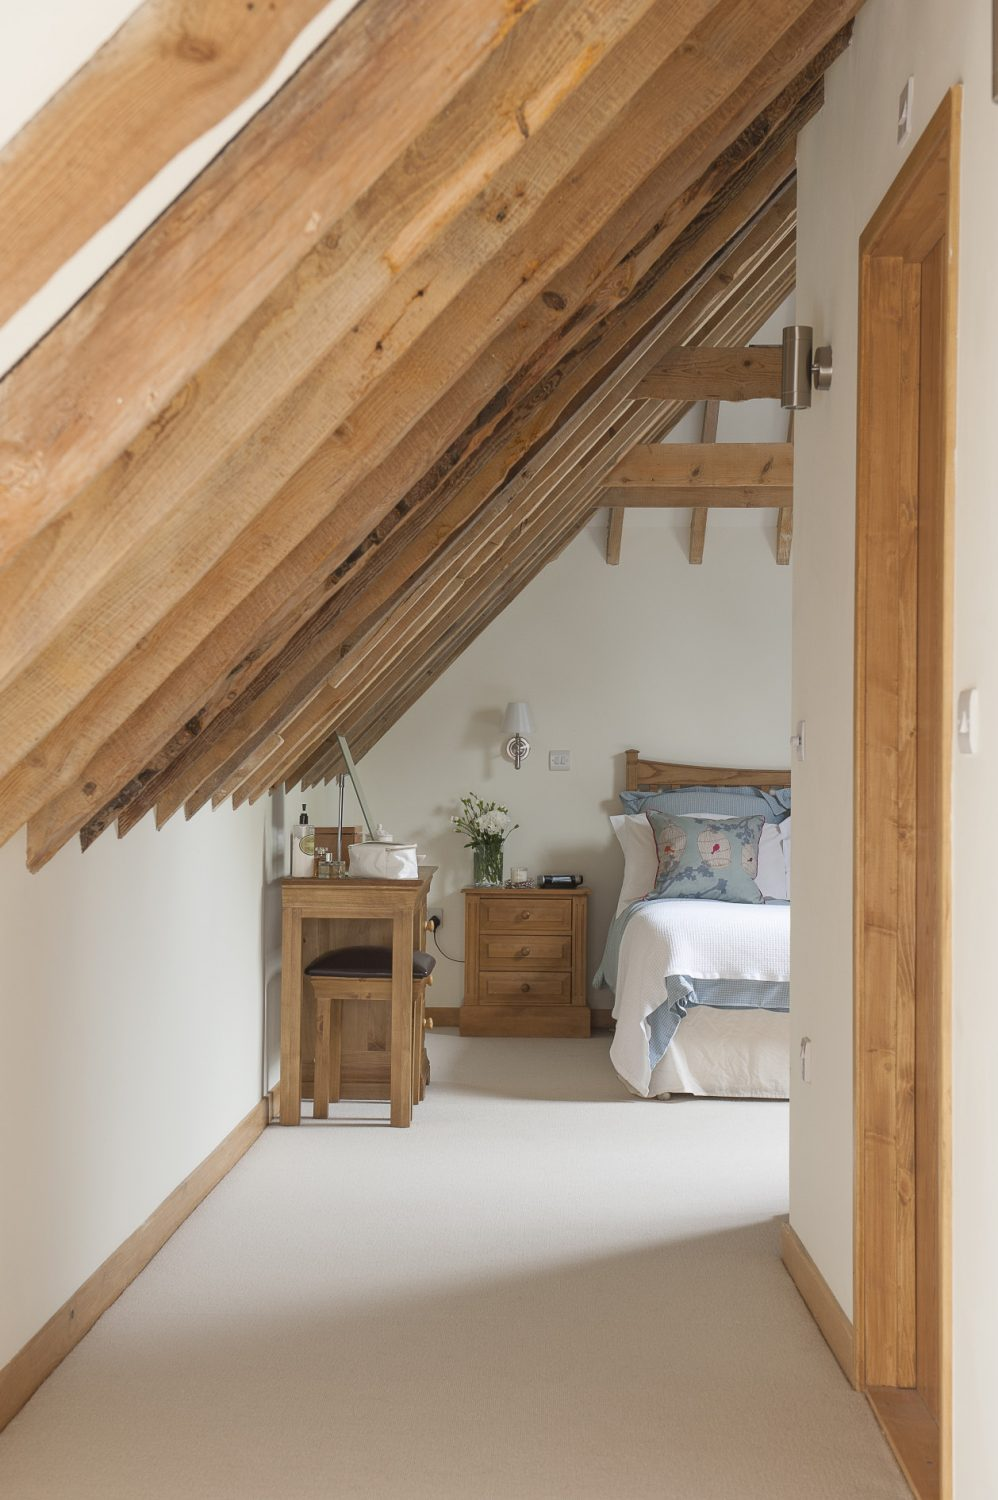 Above, the master bedroom and en suite nestles in the eaves of the building